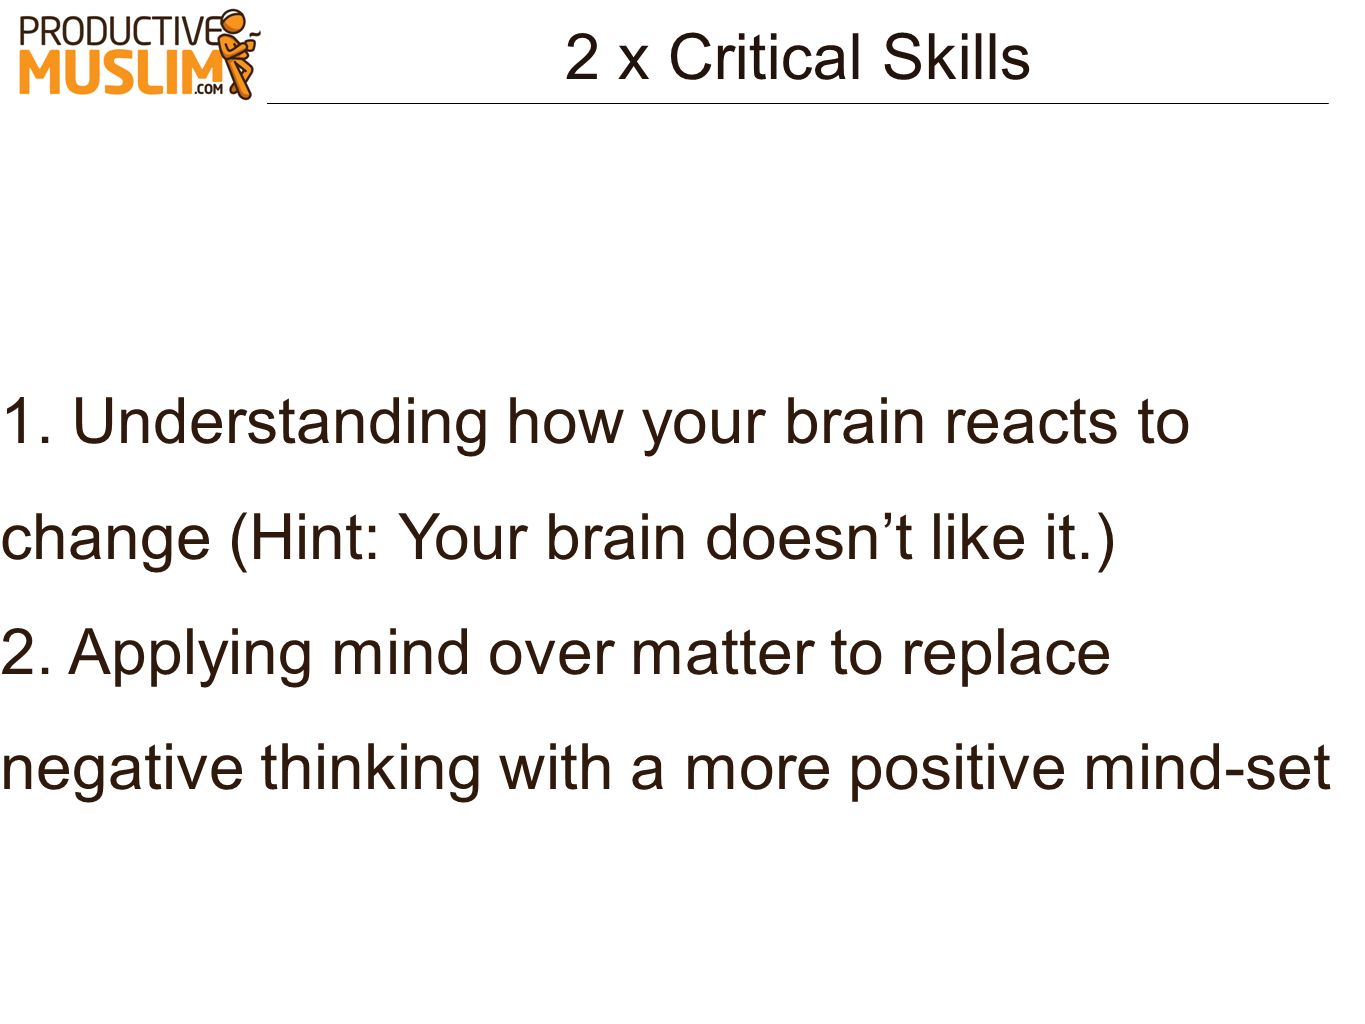 2 x Critical Skills 1. Understanding how your brain reacts to change (Hint: Your brain doesnt like it.) 2. Applying mind over matter to replace negati